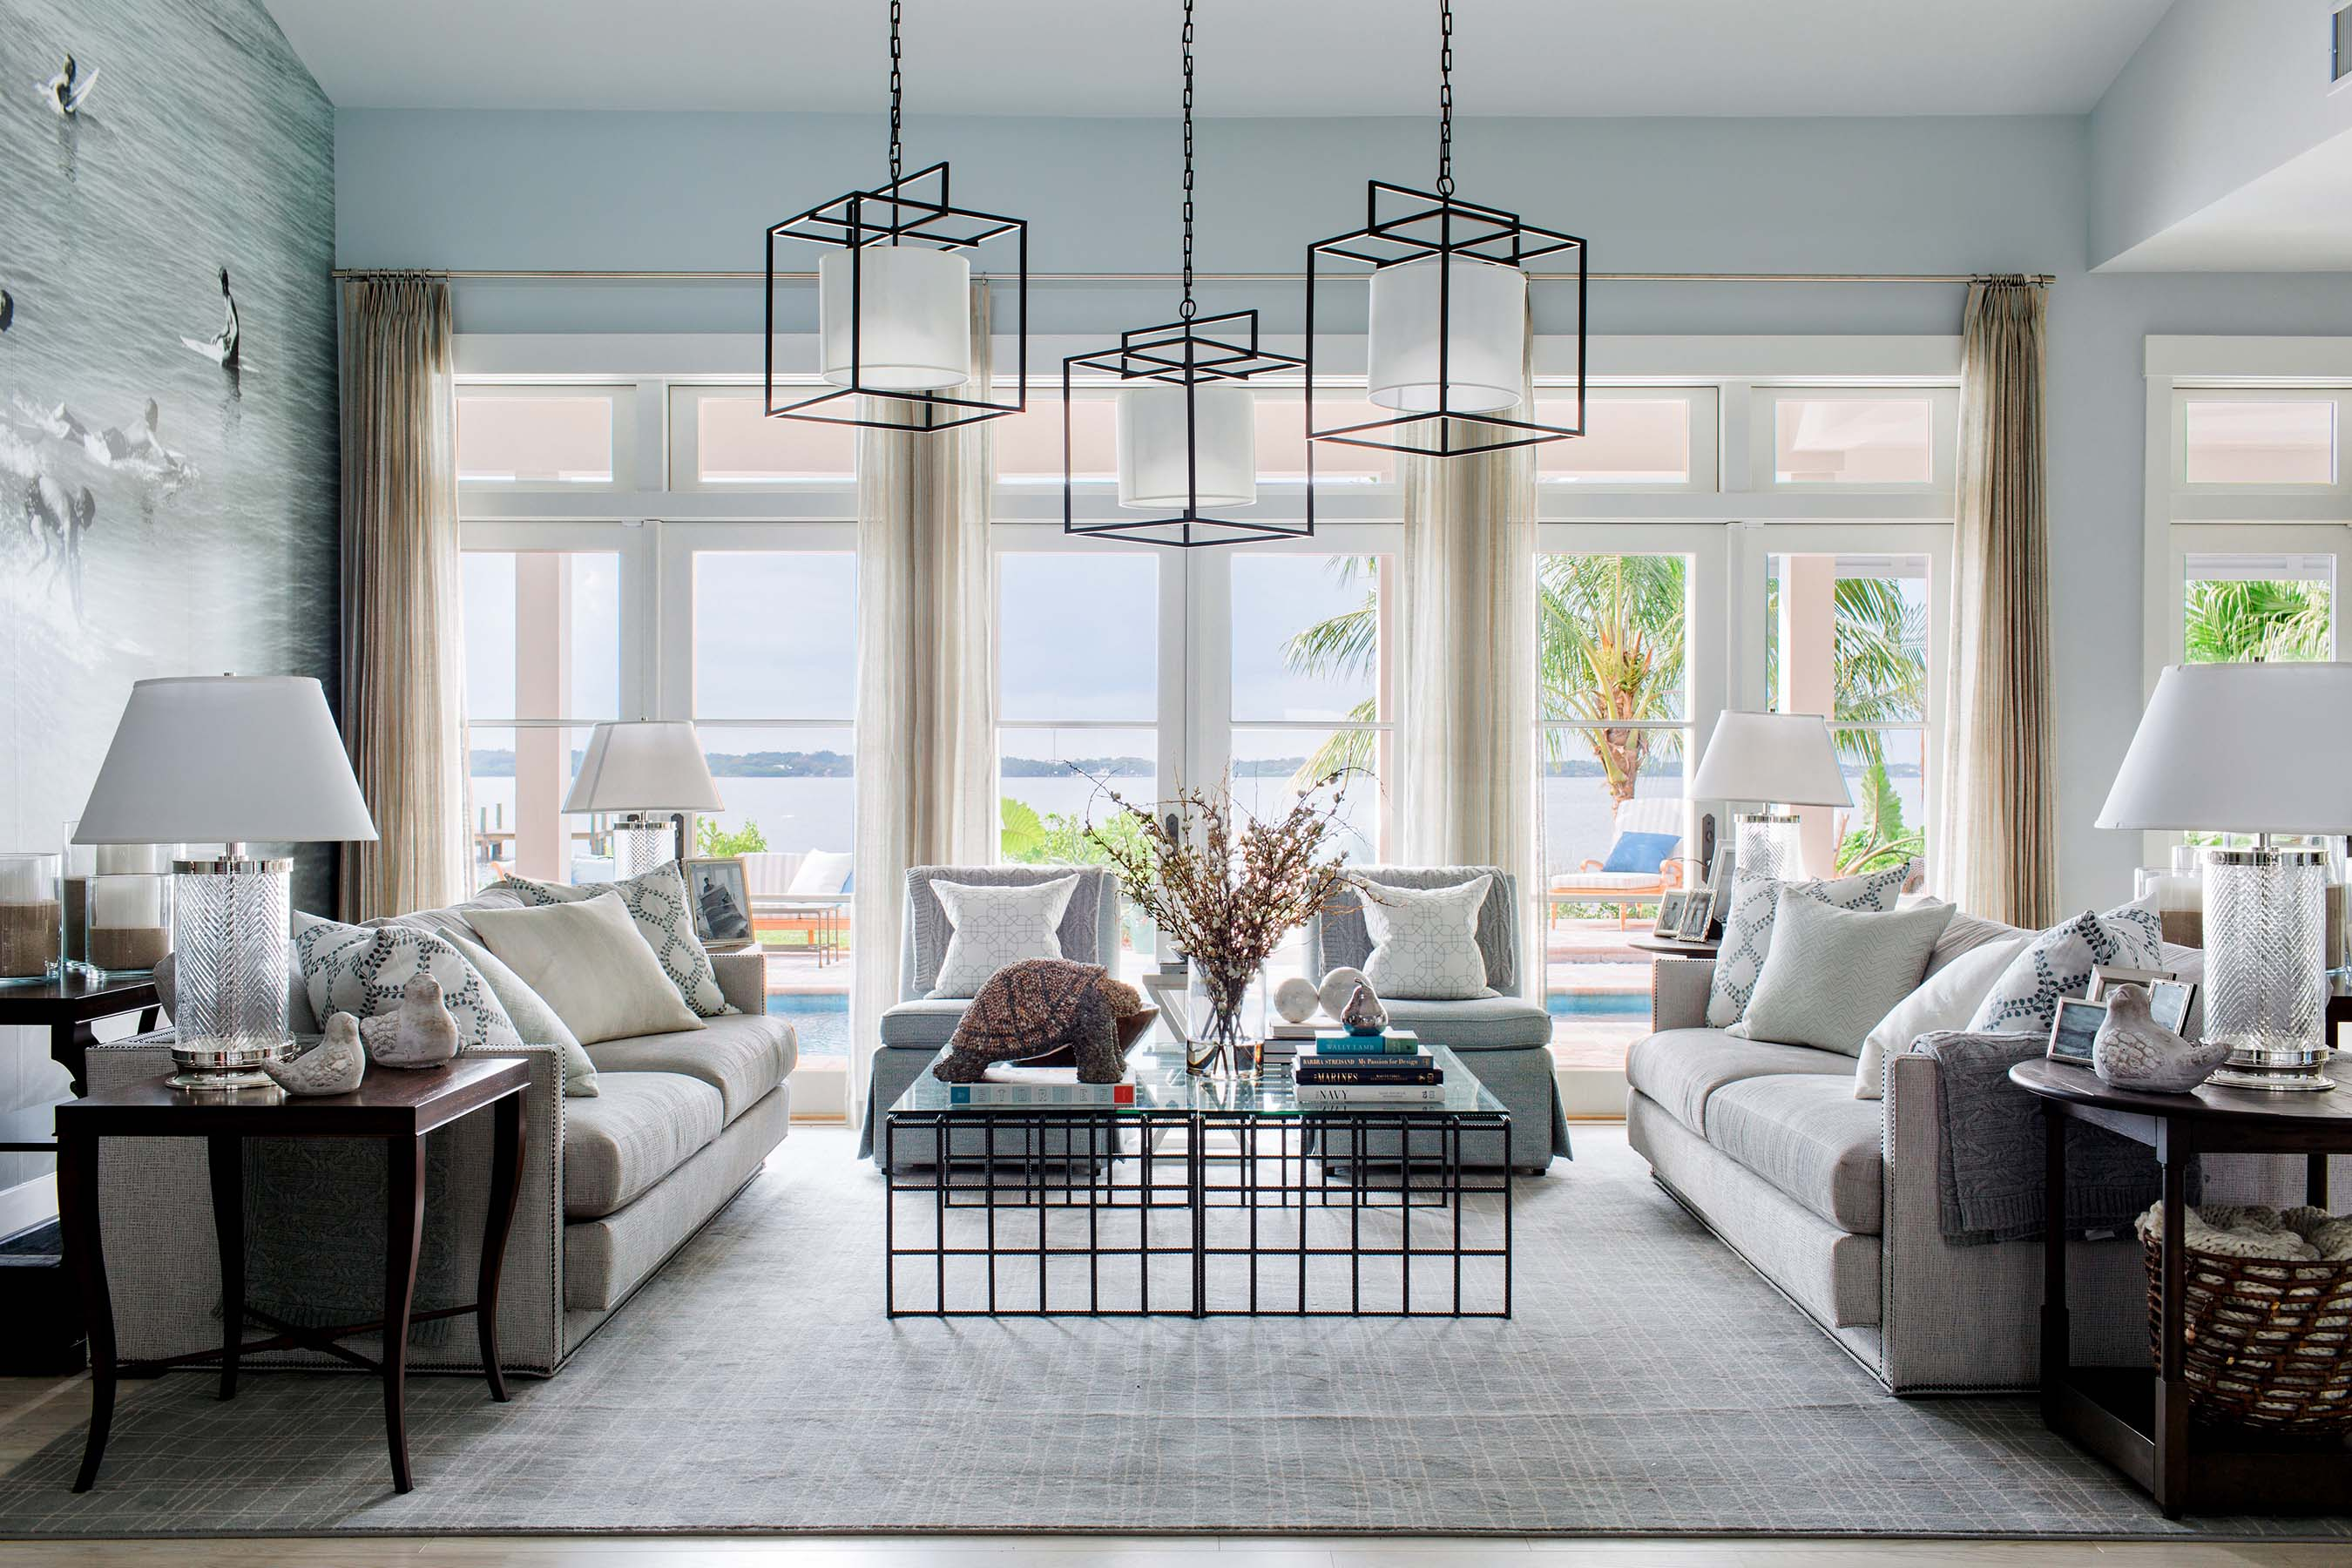 Fans Get A Peek At The First Dream Remodel For HGTV Home 2016